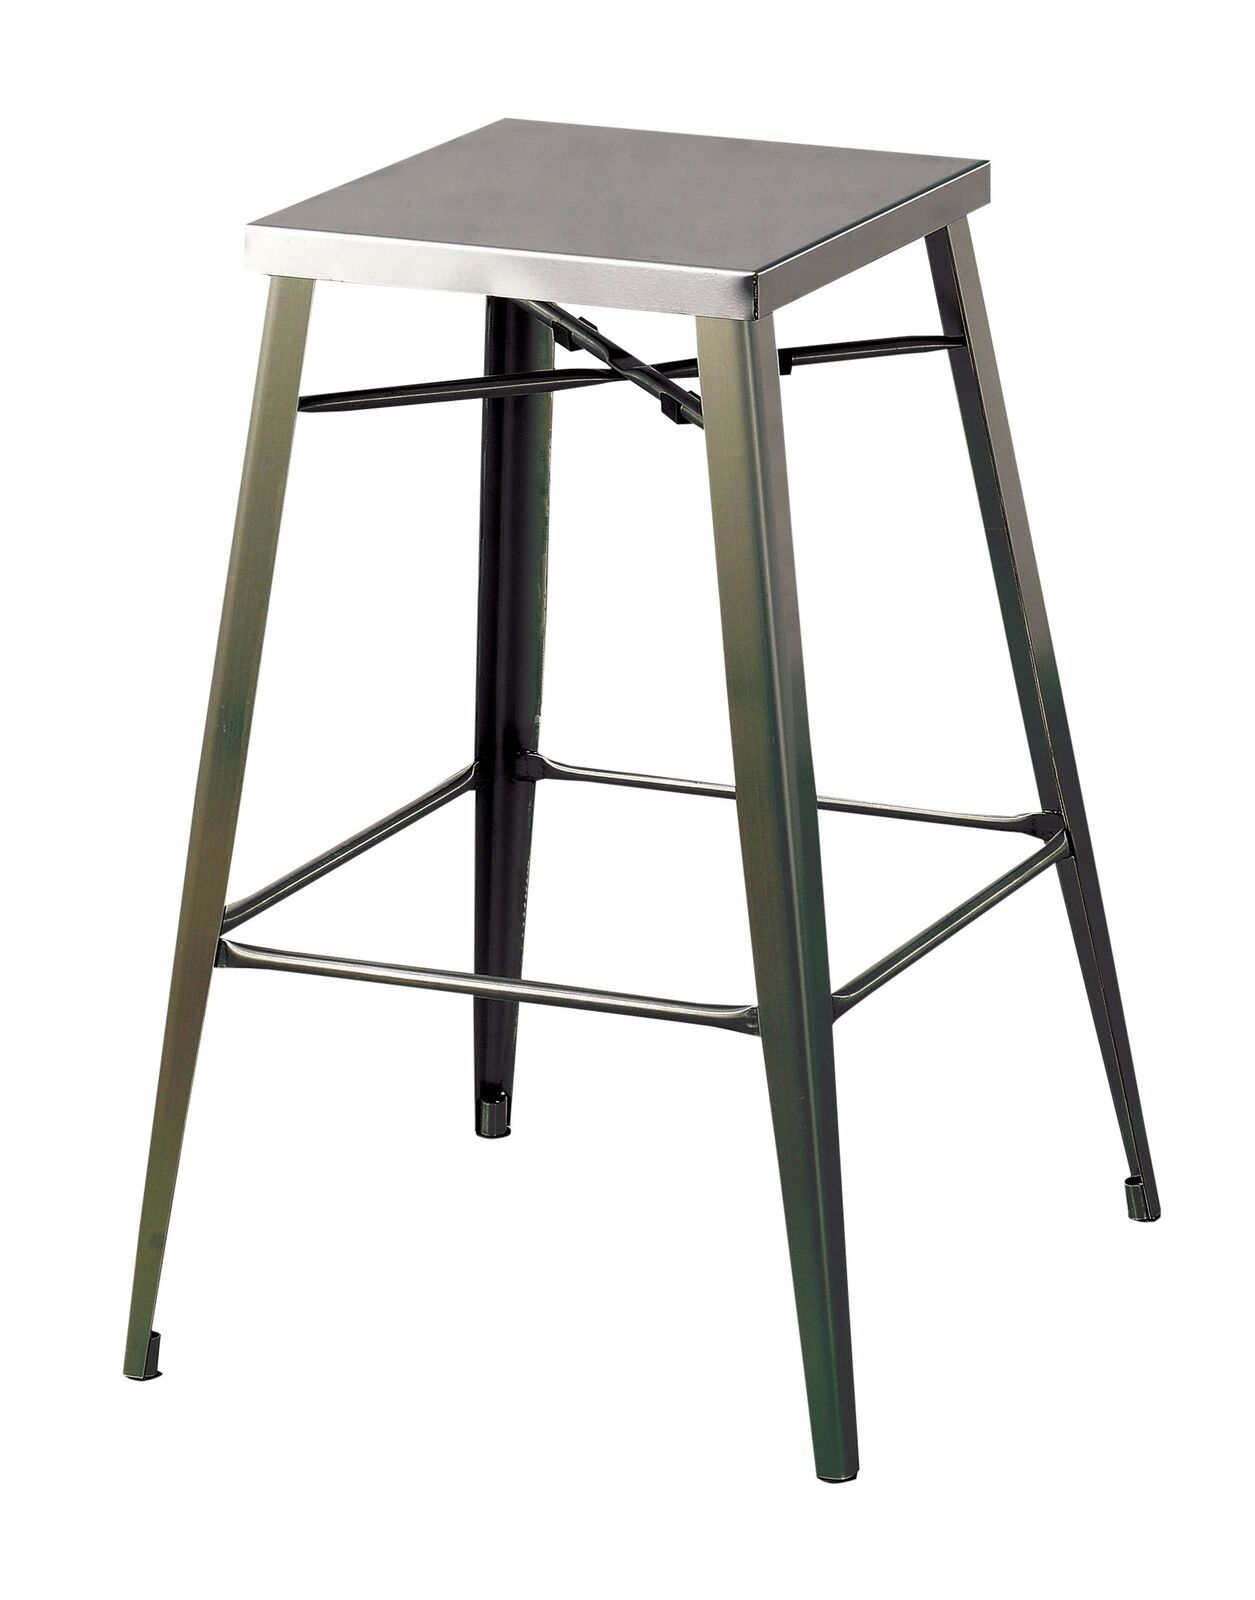 247SHOPATHOME IDF-3504BC-26 Topsham Bar Stools Dark Gray